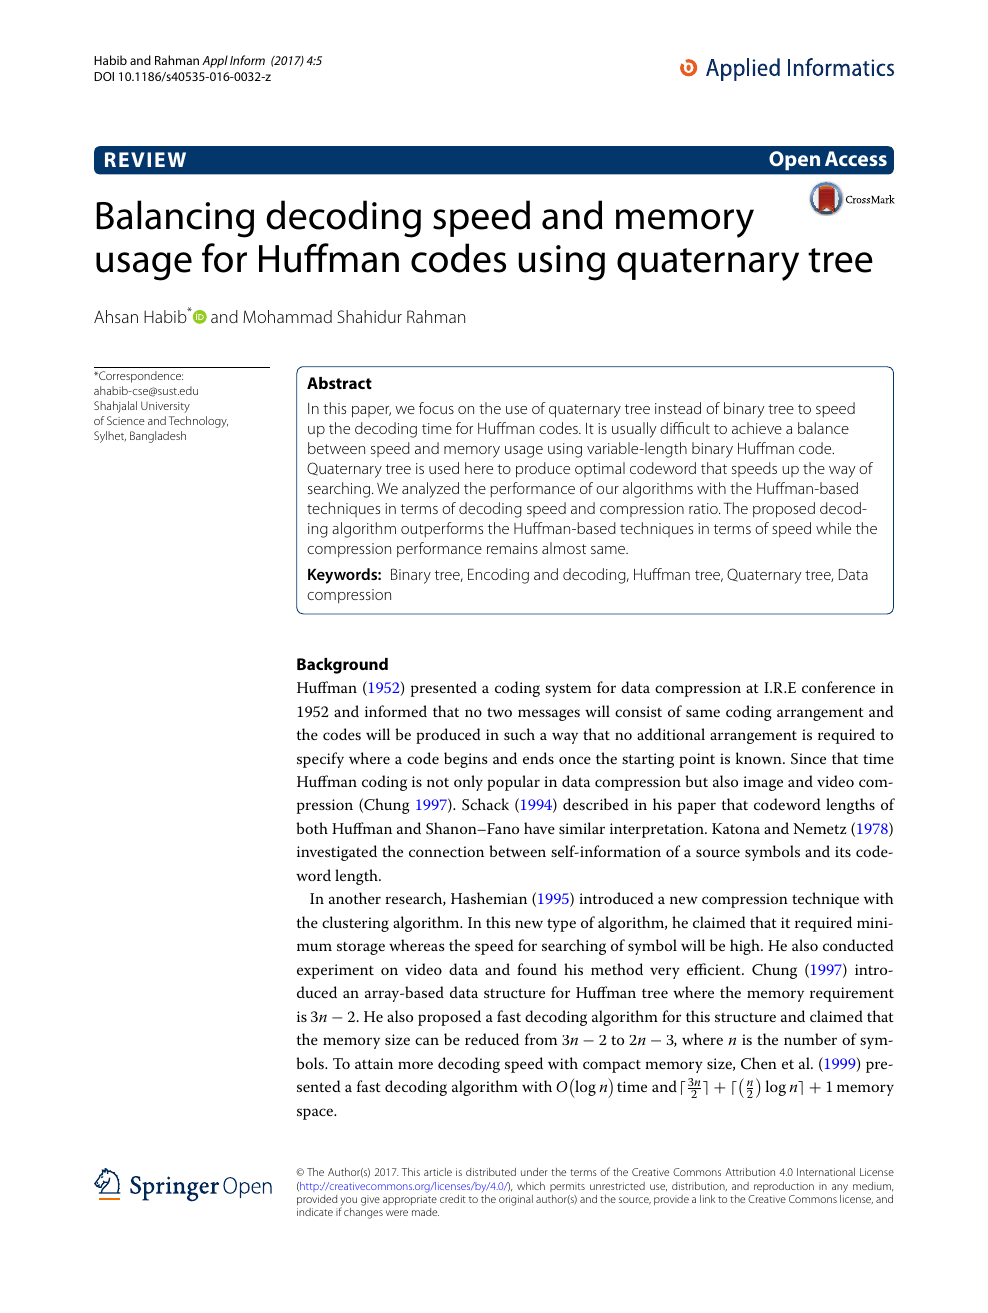 Balancing decoding speed and memory usage for Huffman codes